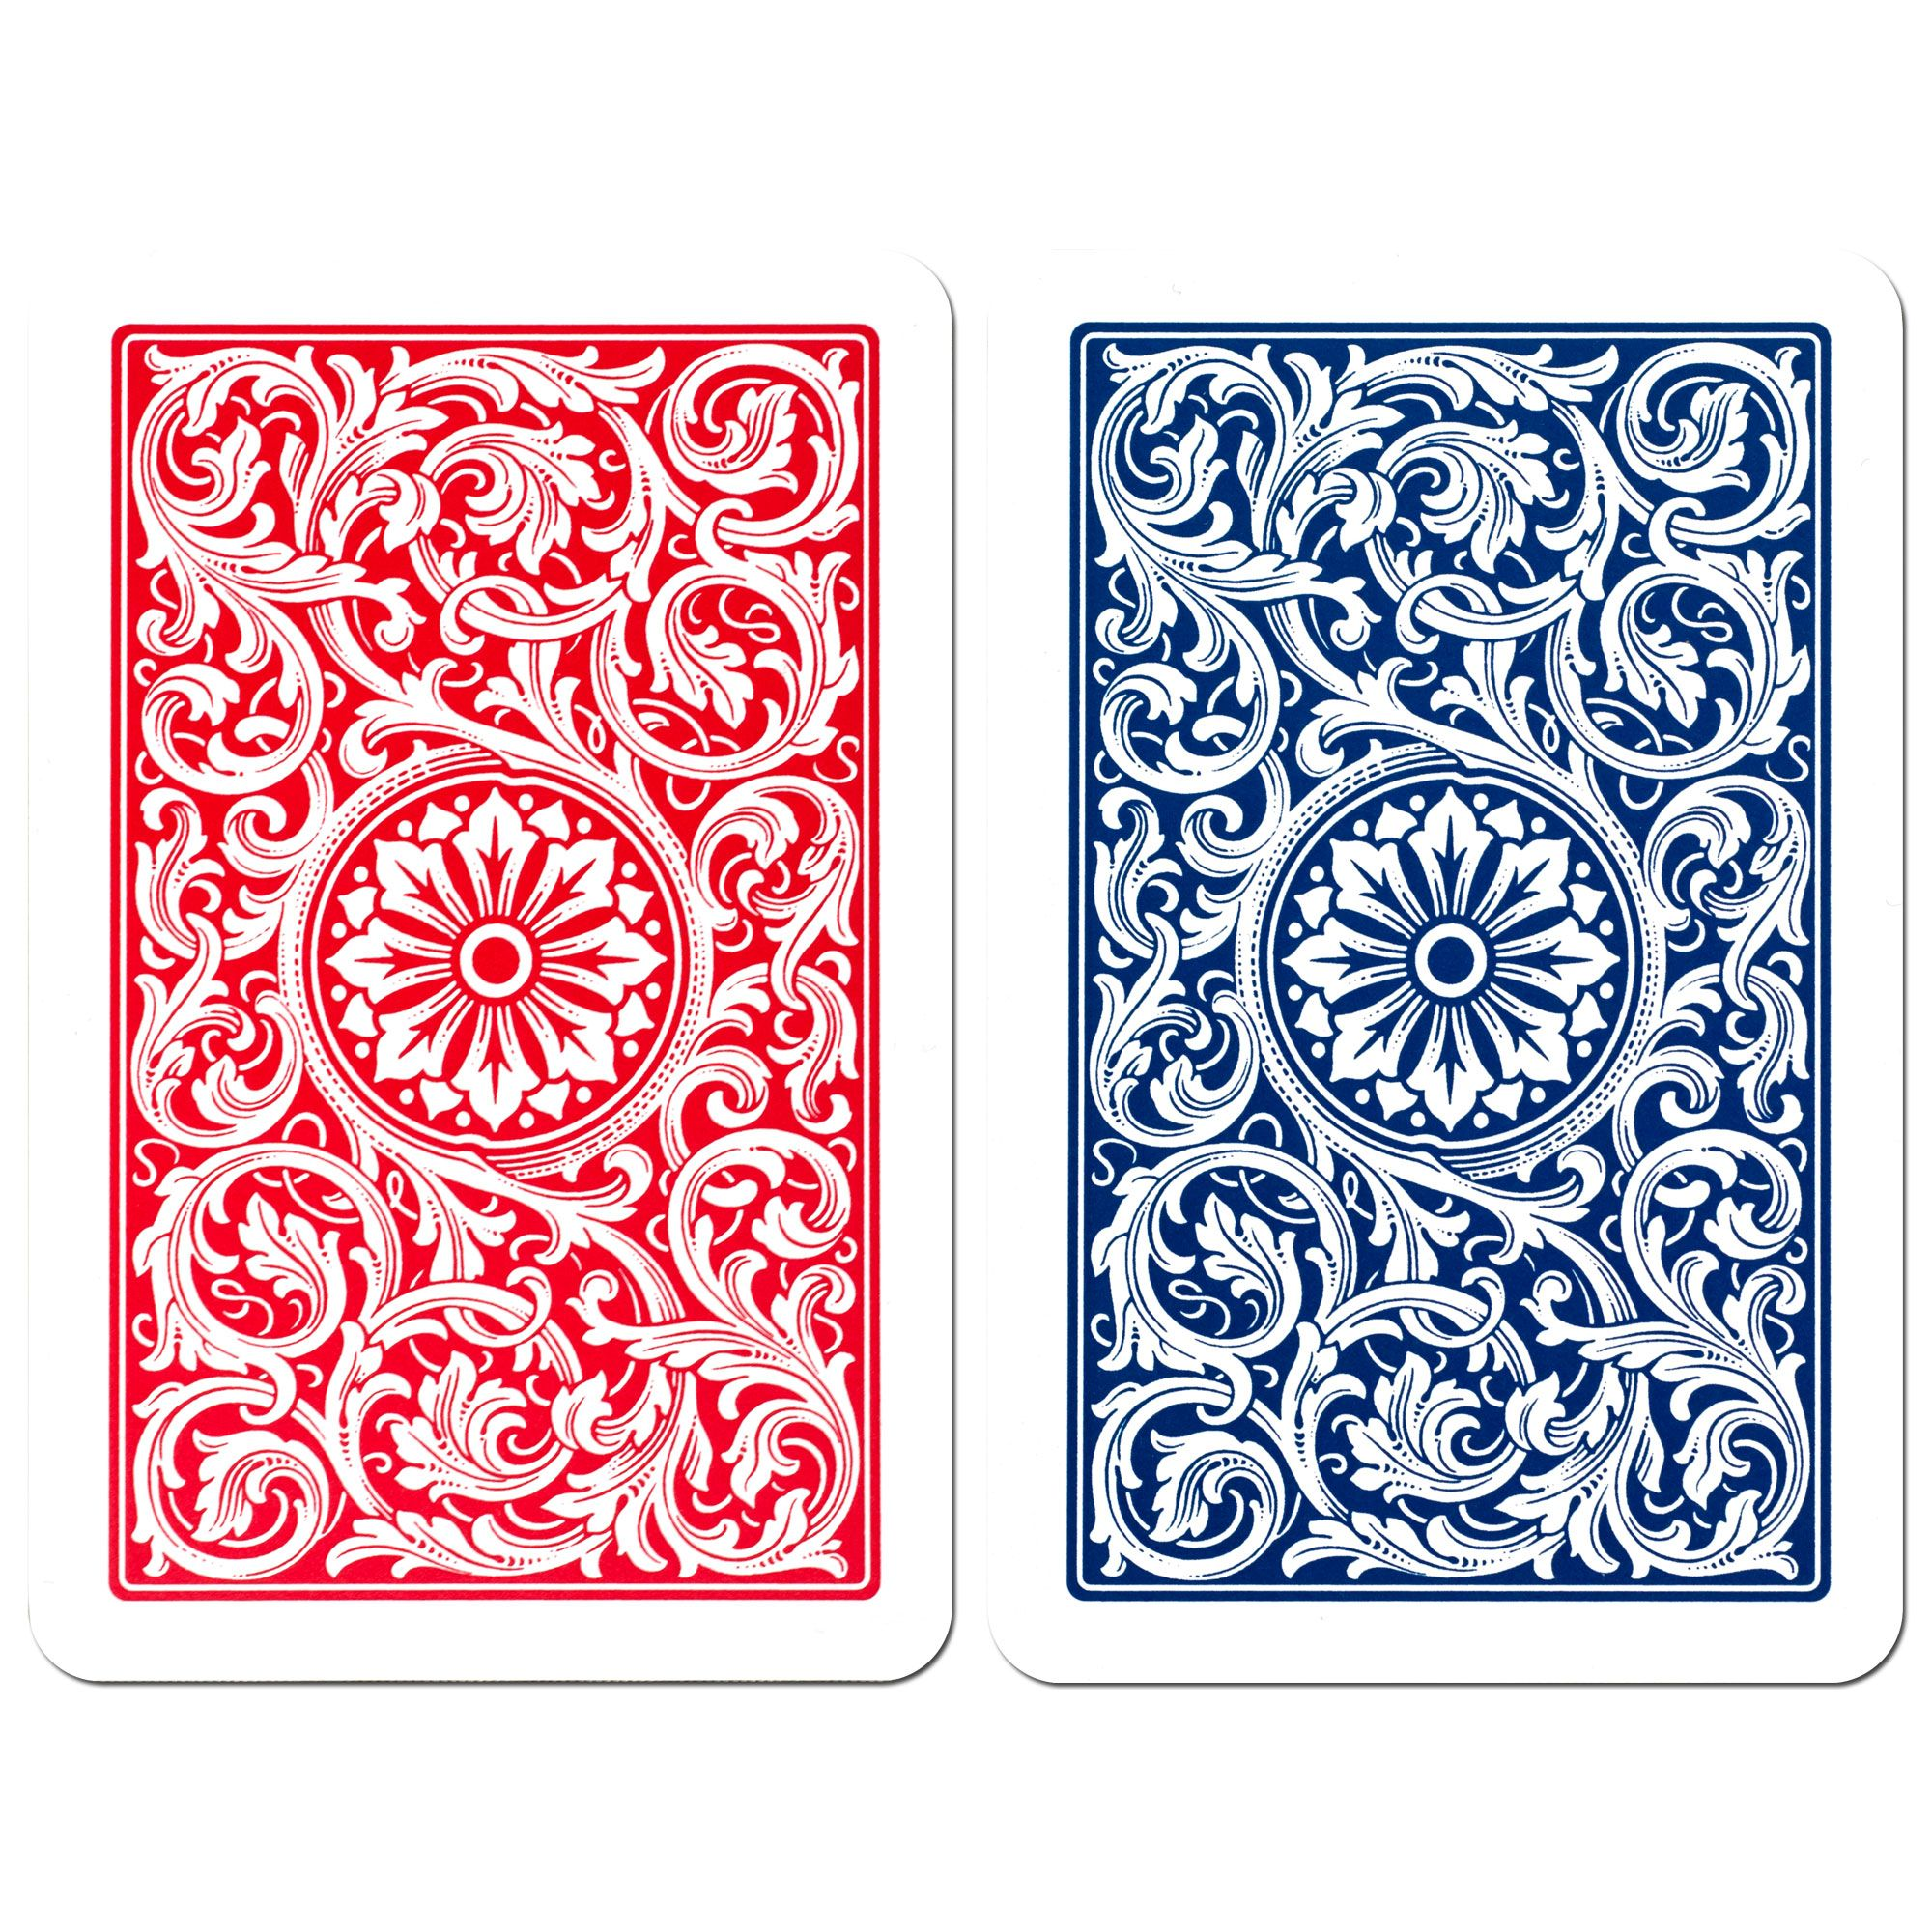 Size casino poker cards american book gambling roulette sport tip